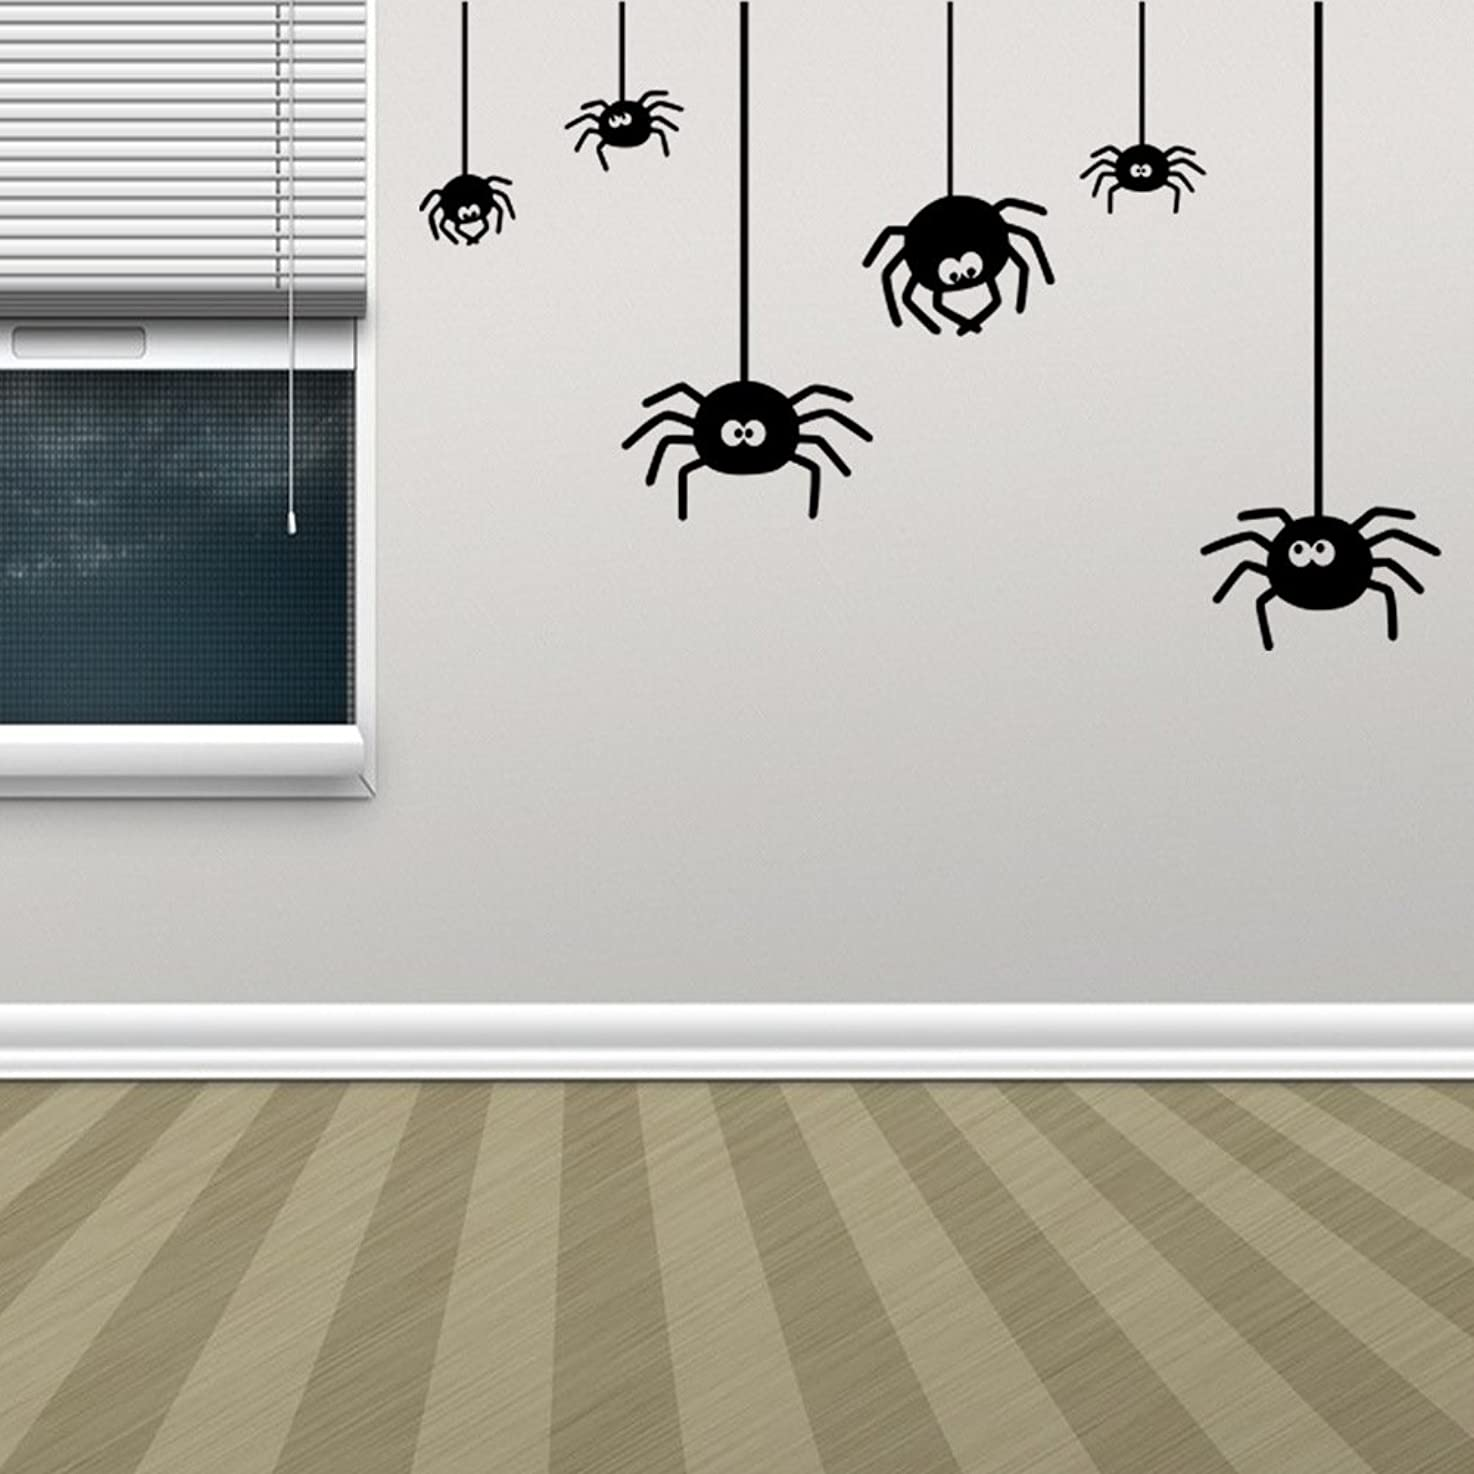 BIBITIME Halloween Wall Art Spider Decal for Wall Sticker for Living Room Porch Bedroom Nursery Kids Room Decor Shop Showcase Display Window DIY (Small size)